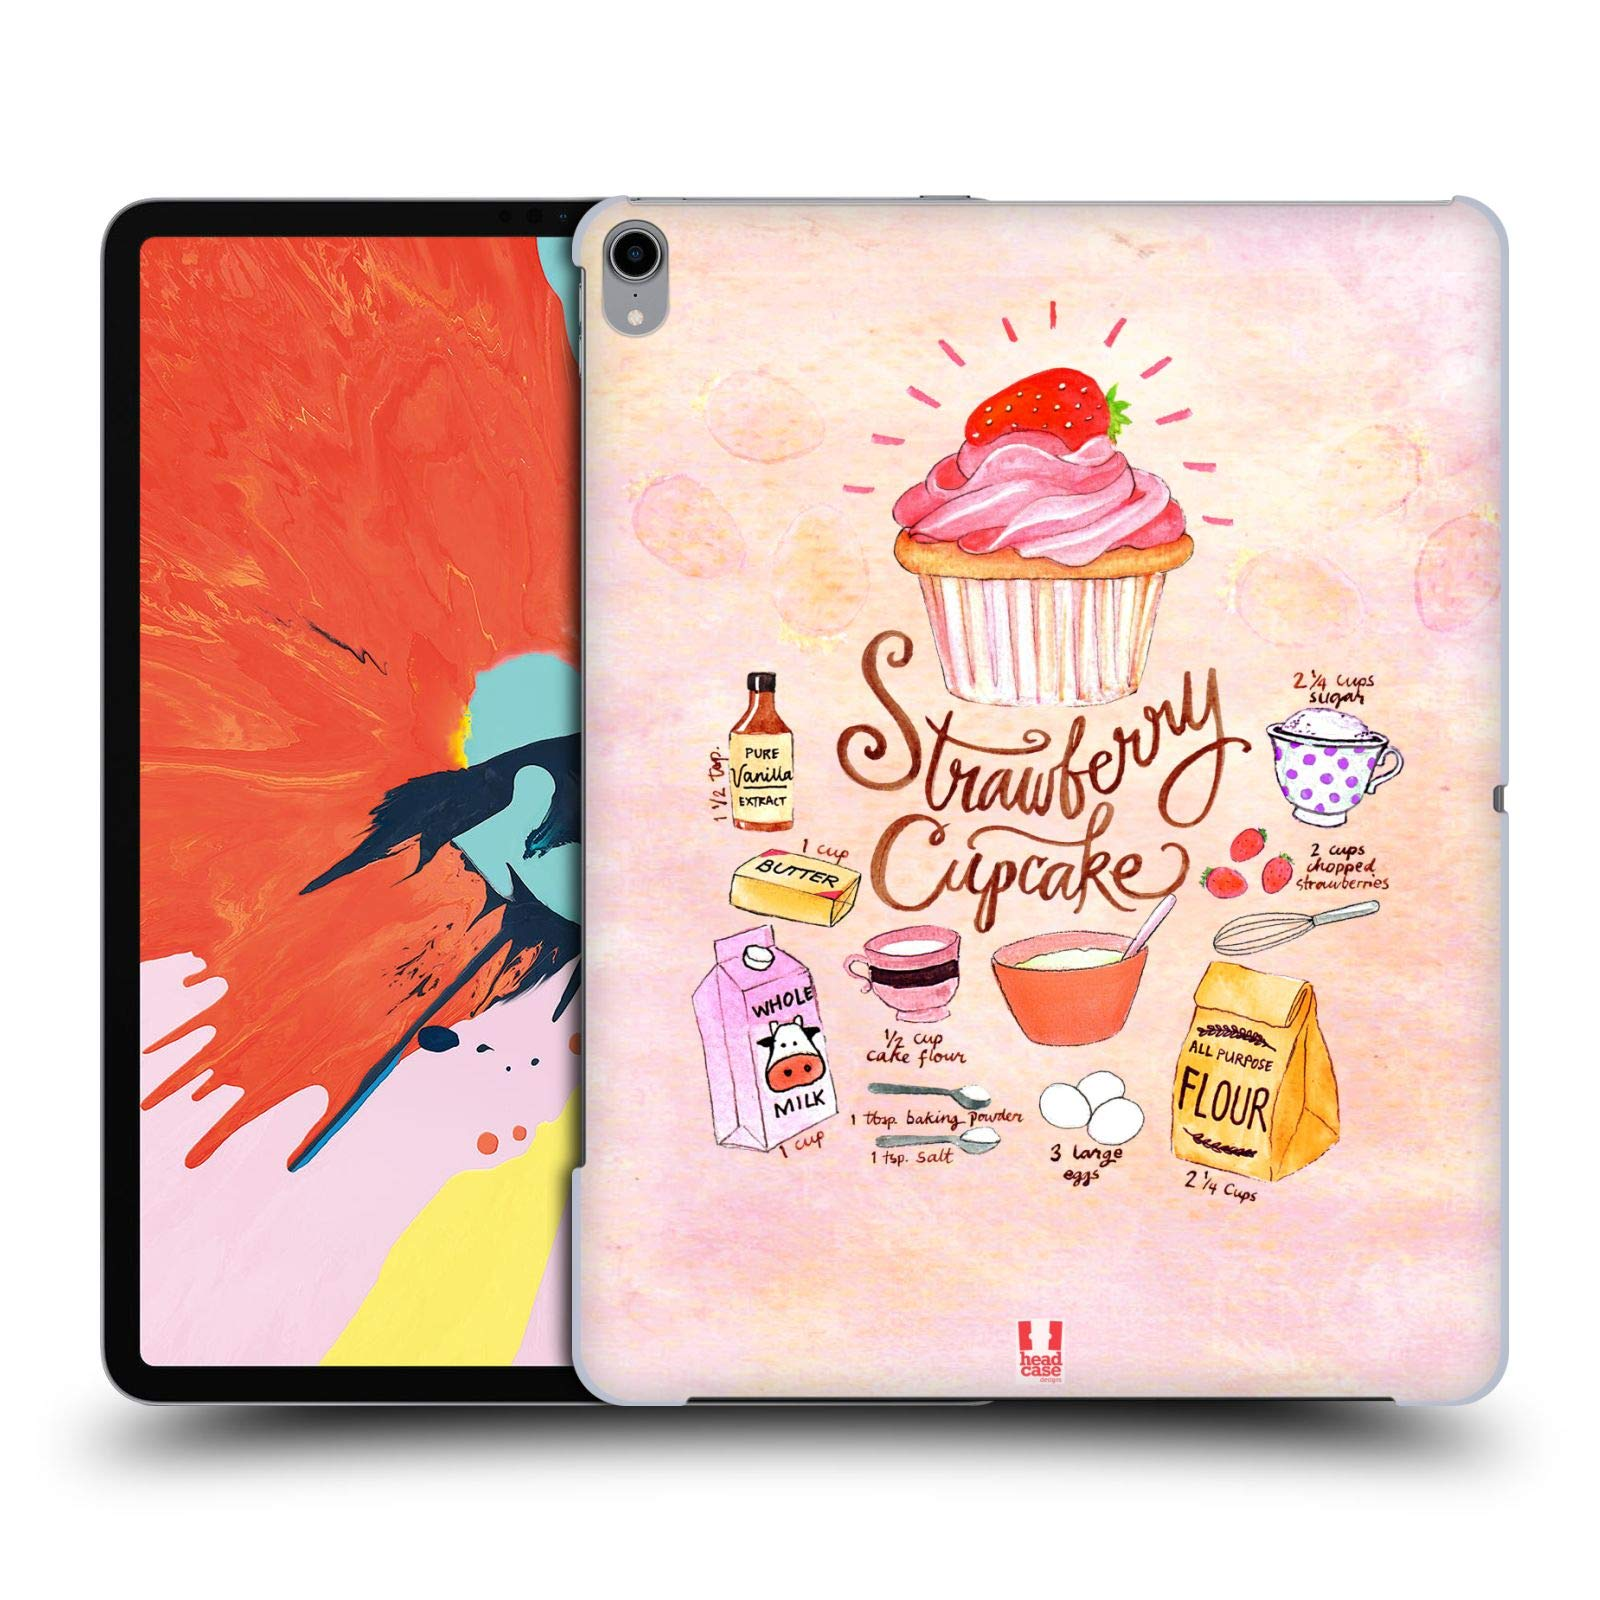 Head Case Designs Strawberry Cupcake Illustrated Recipes Hard Back Case Compatible for iPad Pro 12.9 (2018) by Head Case Designs